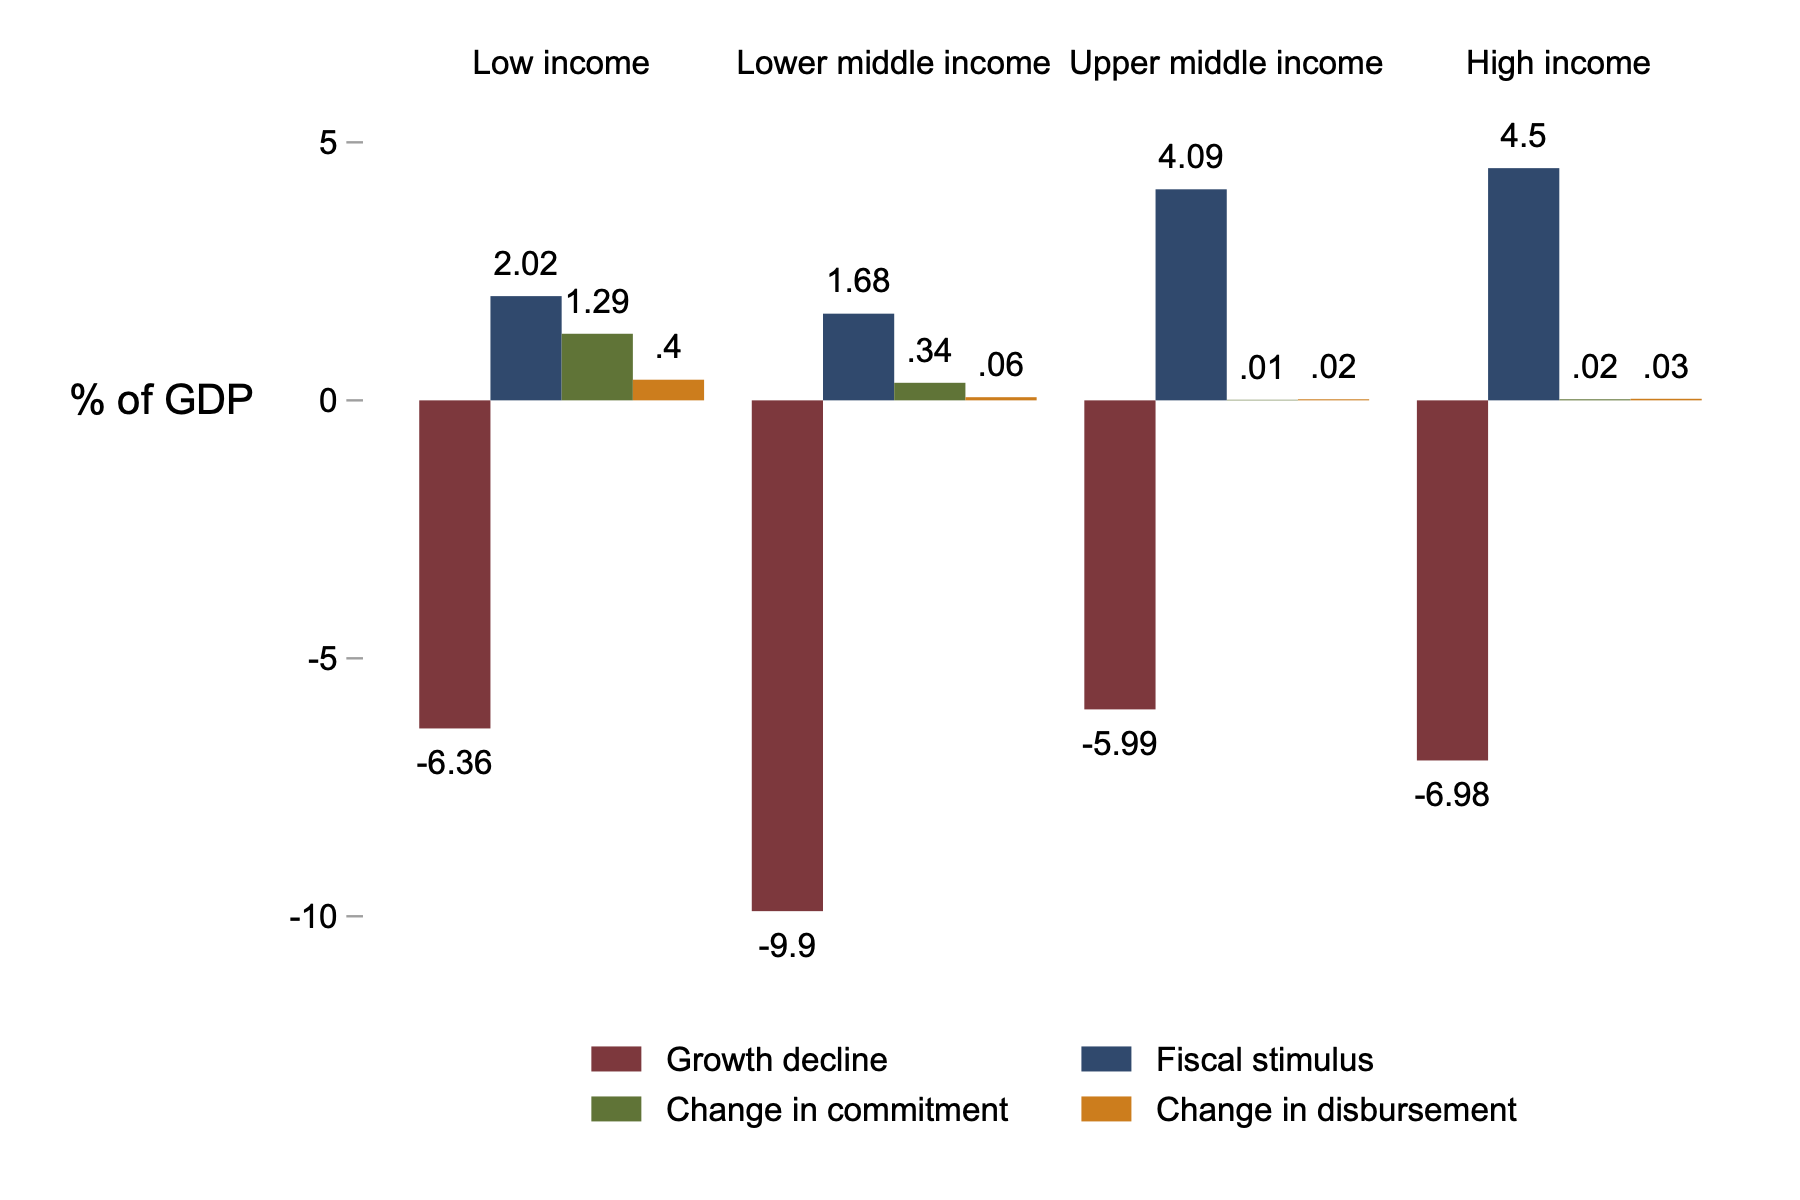 Chart showing that changes in commitment and disbursement equaled 1.29 and .4% of GDP for low-income countries, but it was still dwarfed by the magnitude of the growth decline